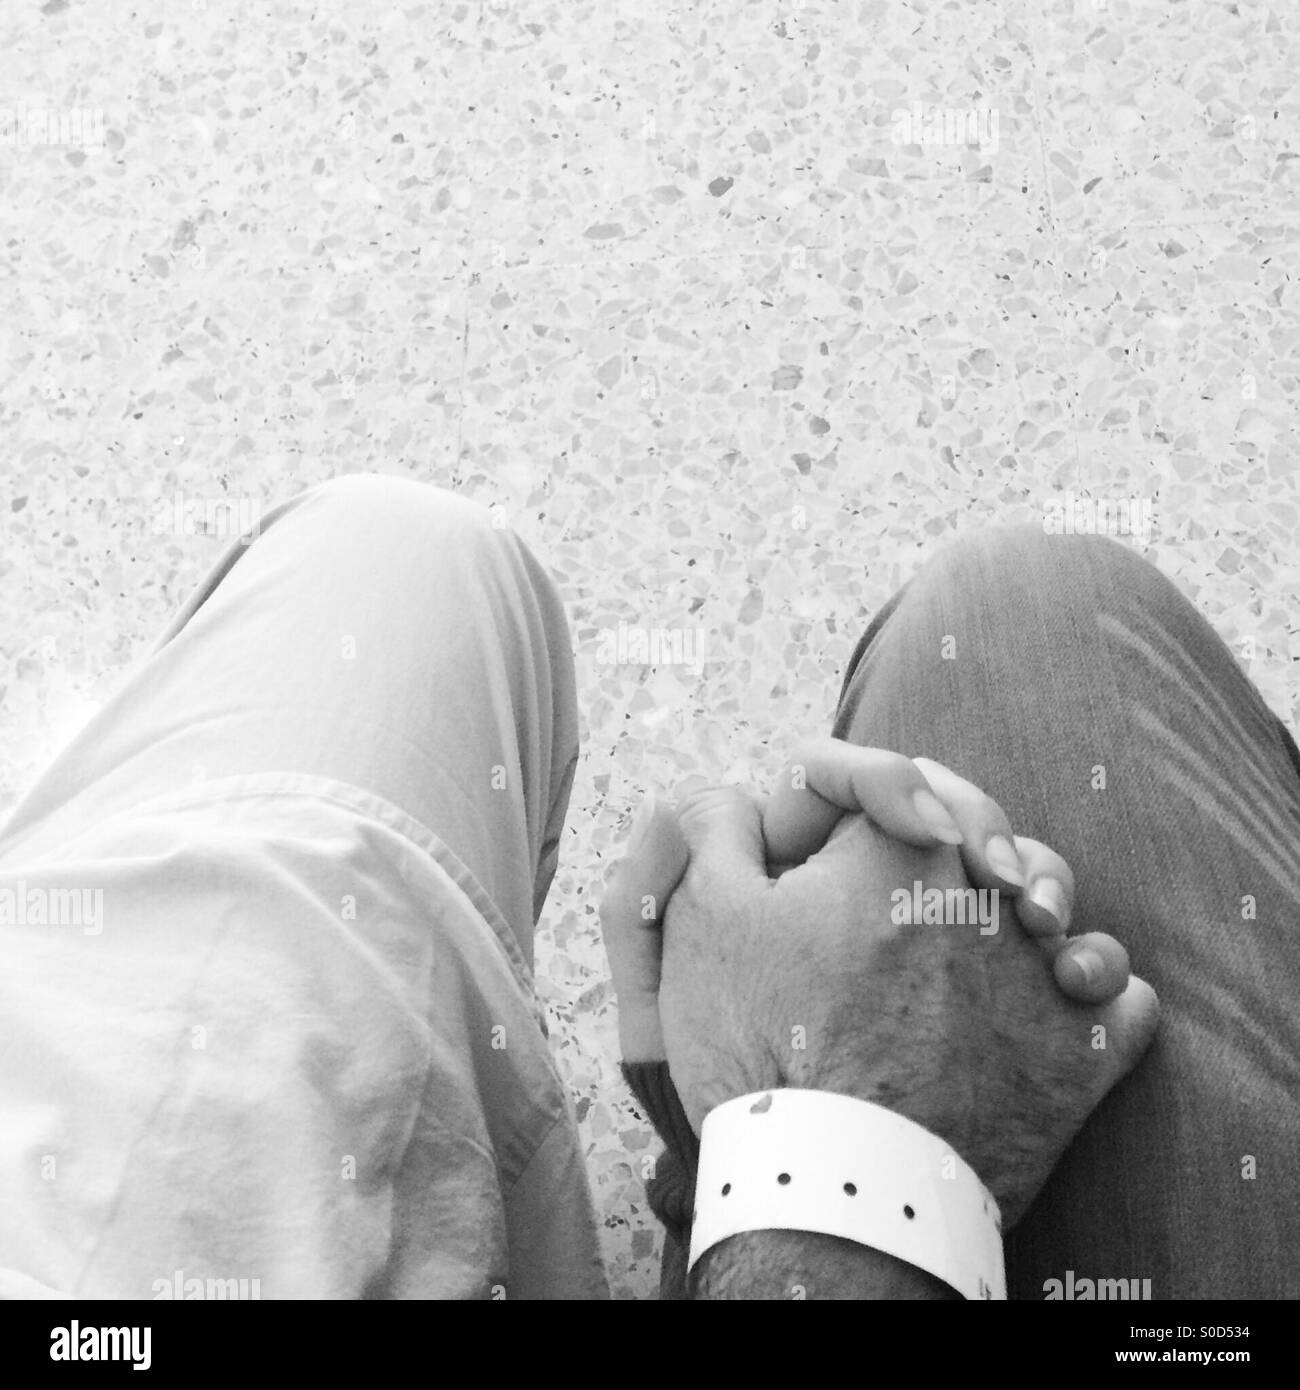 Holding hands at the hospital - Stock Image